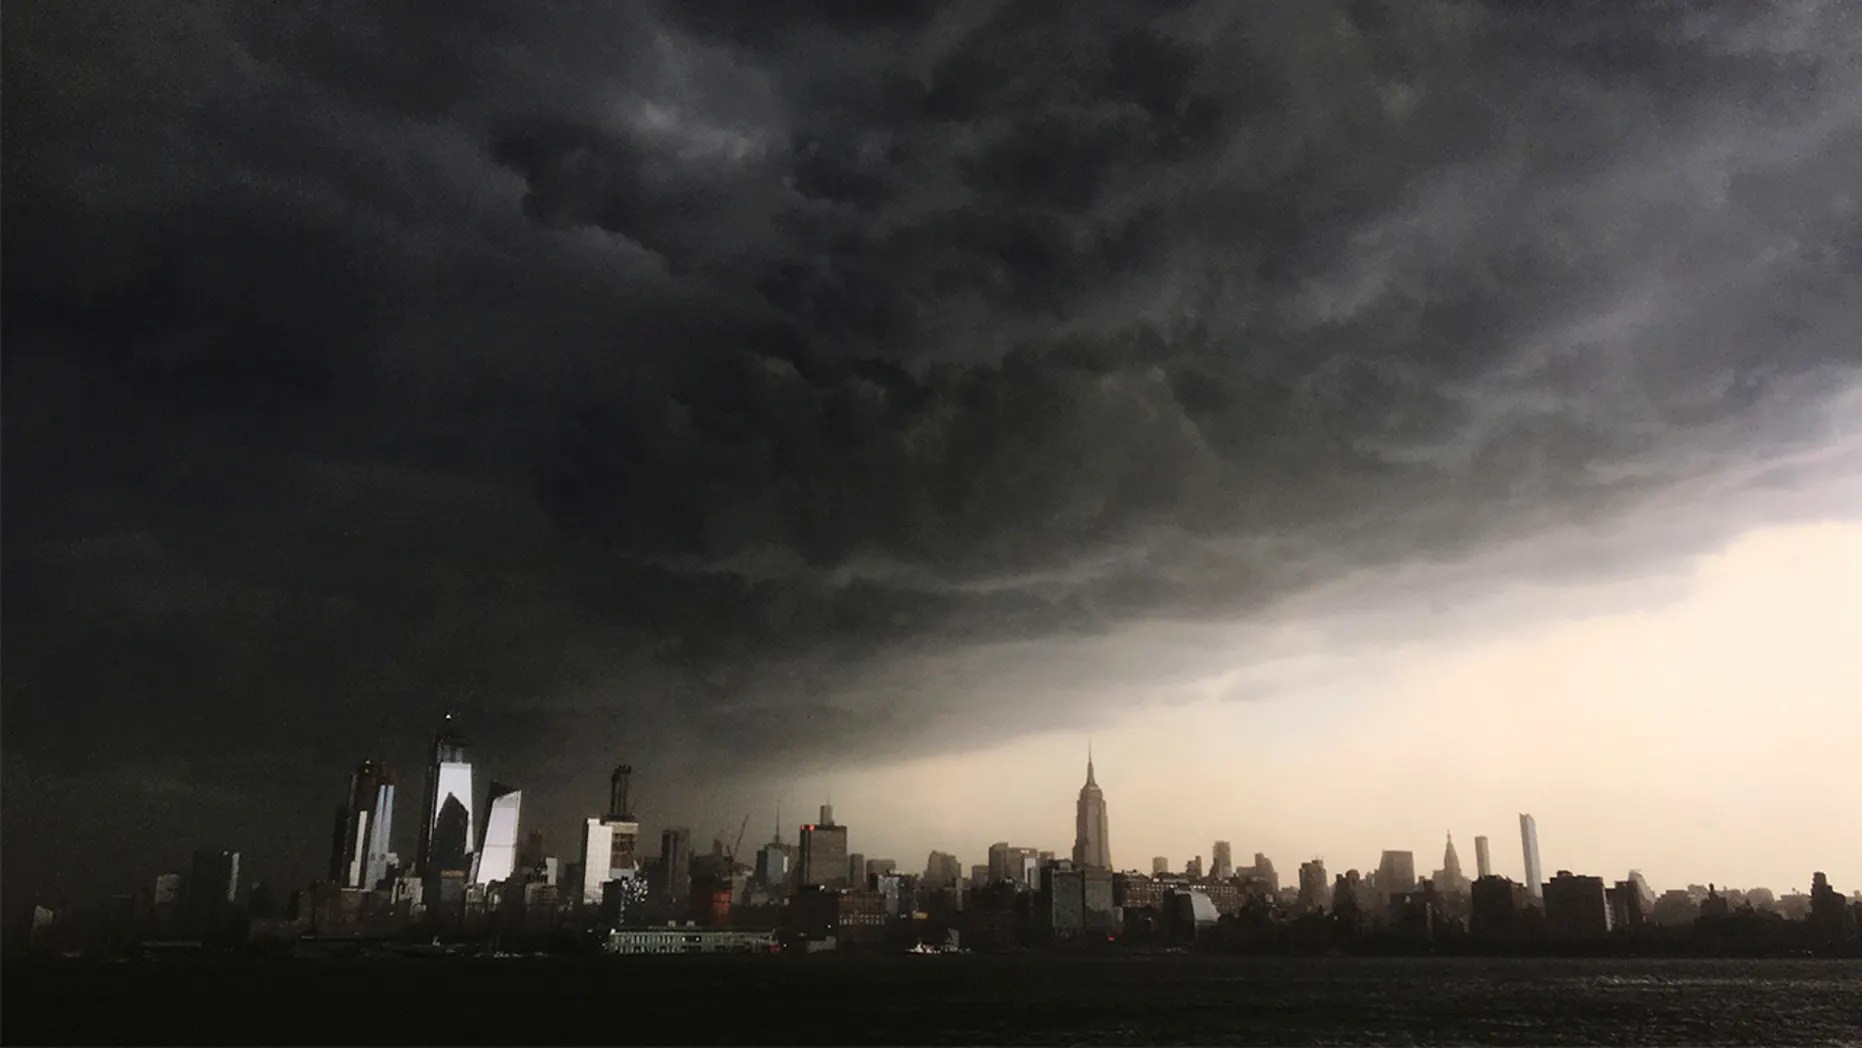 File photo:Storm clouds seen gathering over New York City on May 15, 2018.